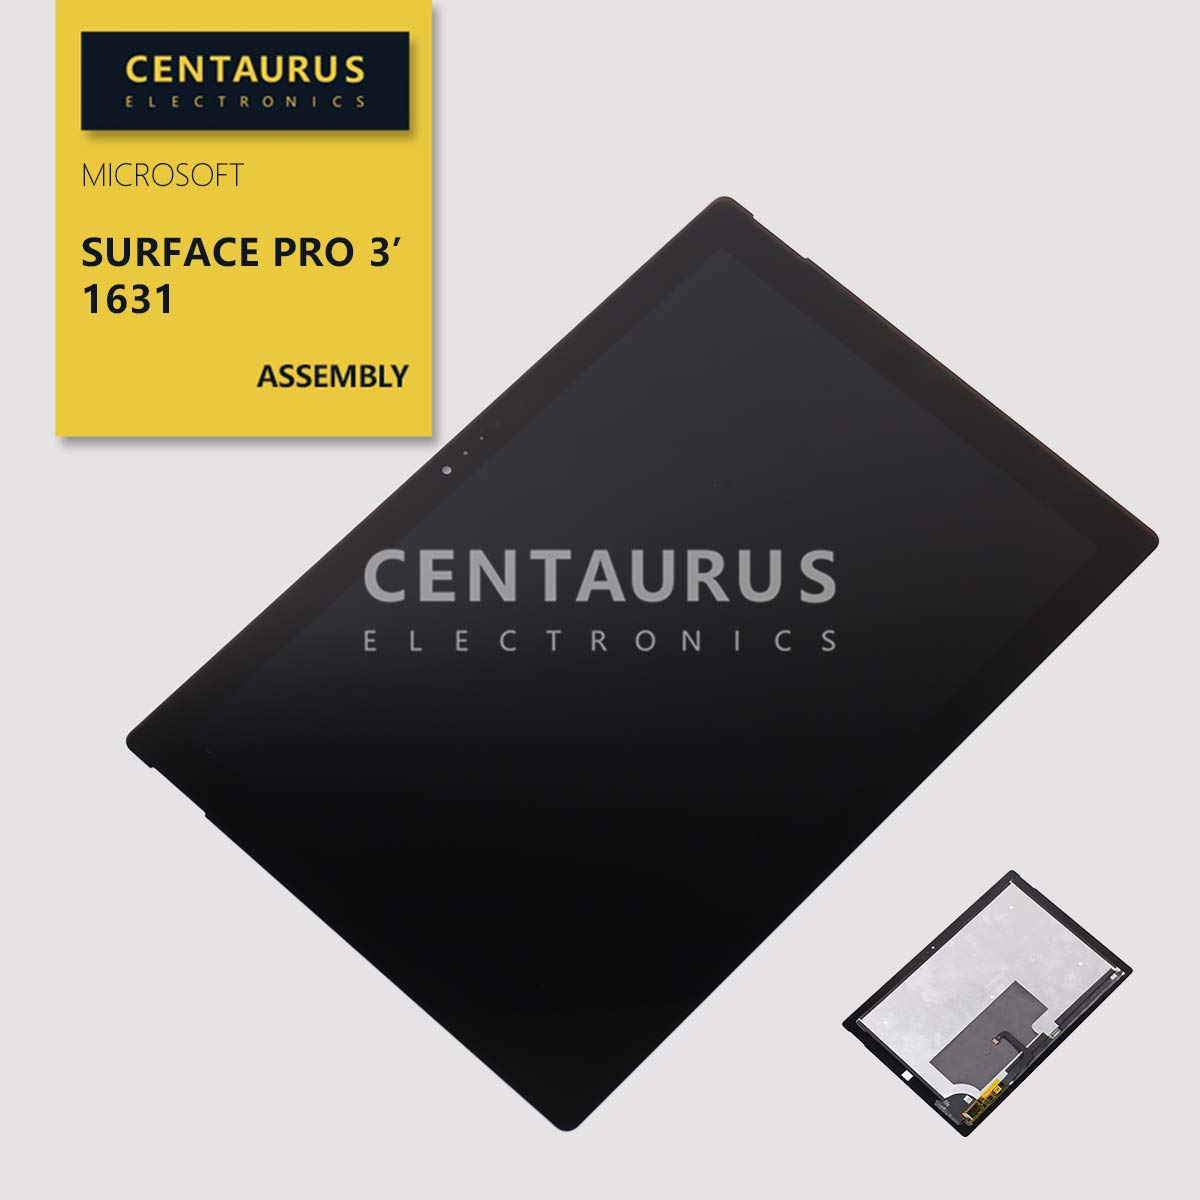 CENTAURUS Assembly for Microsoft Surface Pro 3 (1631) LTL120QL01 V1.1 12.0 inch Replacement LCD Display Touch Screen Digitizer Glass Full Part Complete by CE CENTAURUS ELECTRONICS (Image #1)